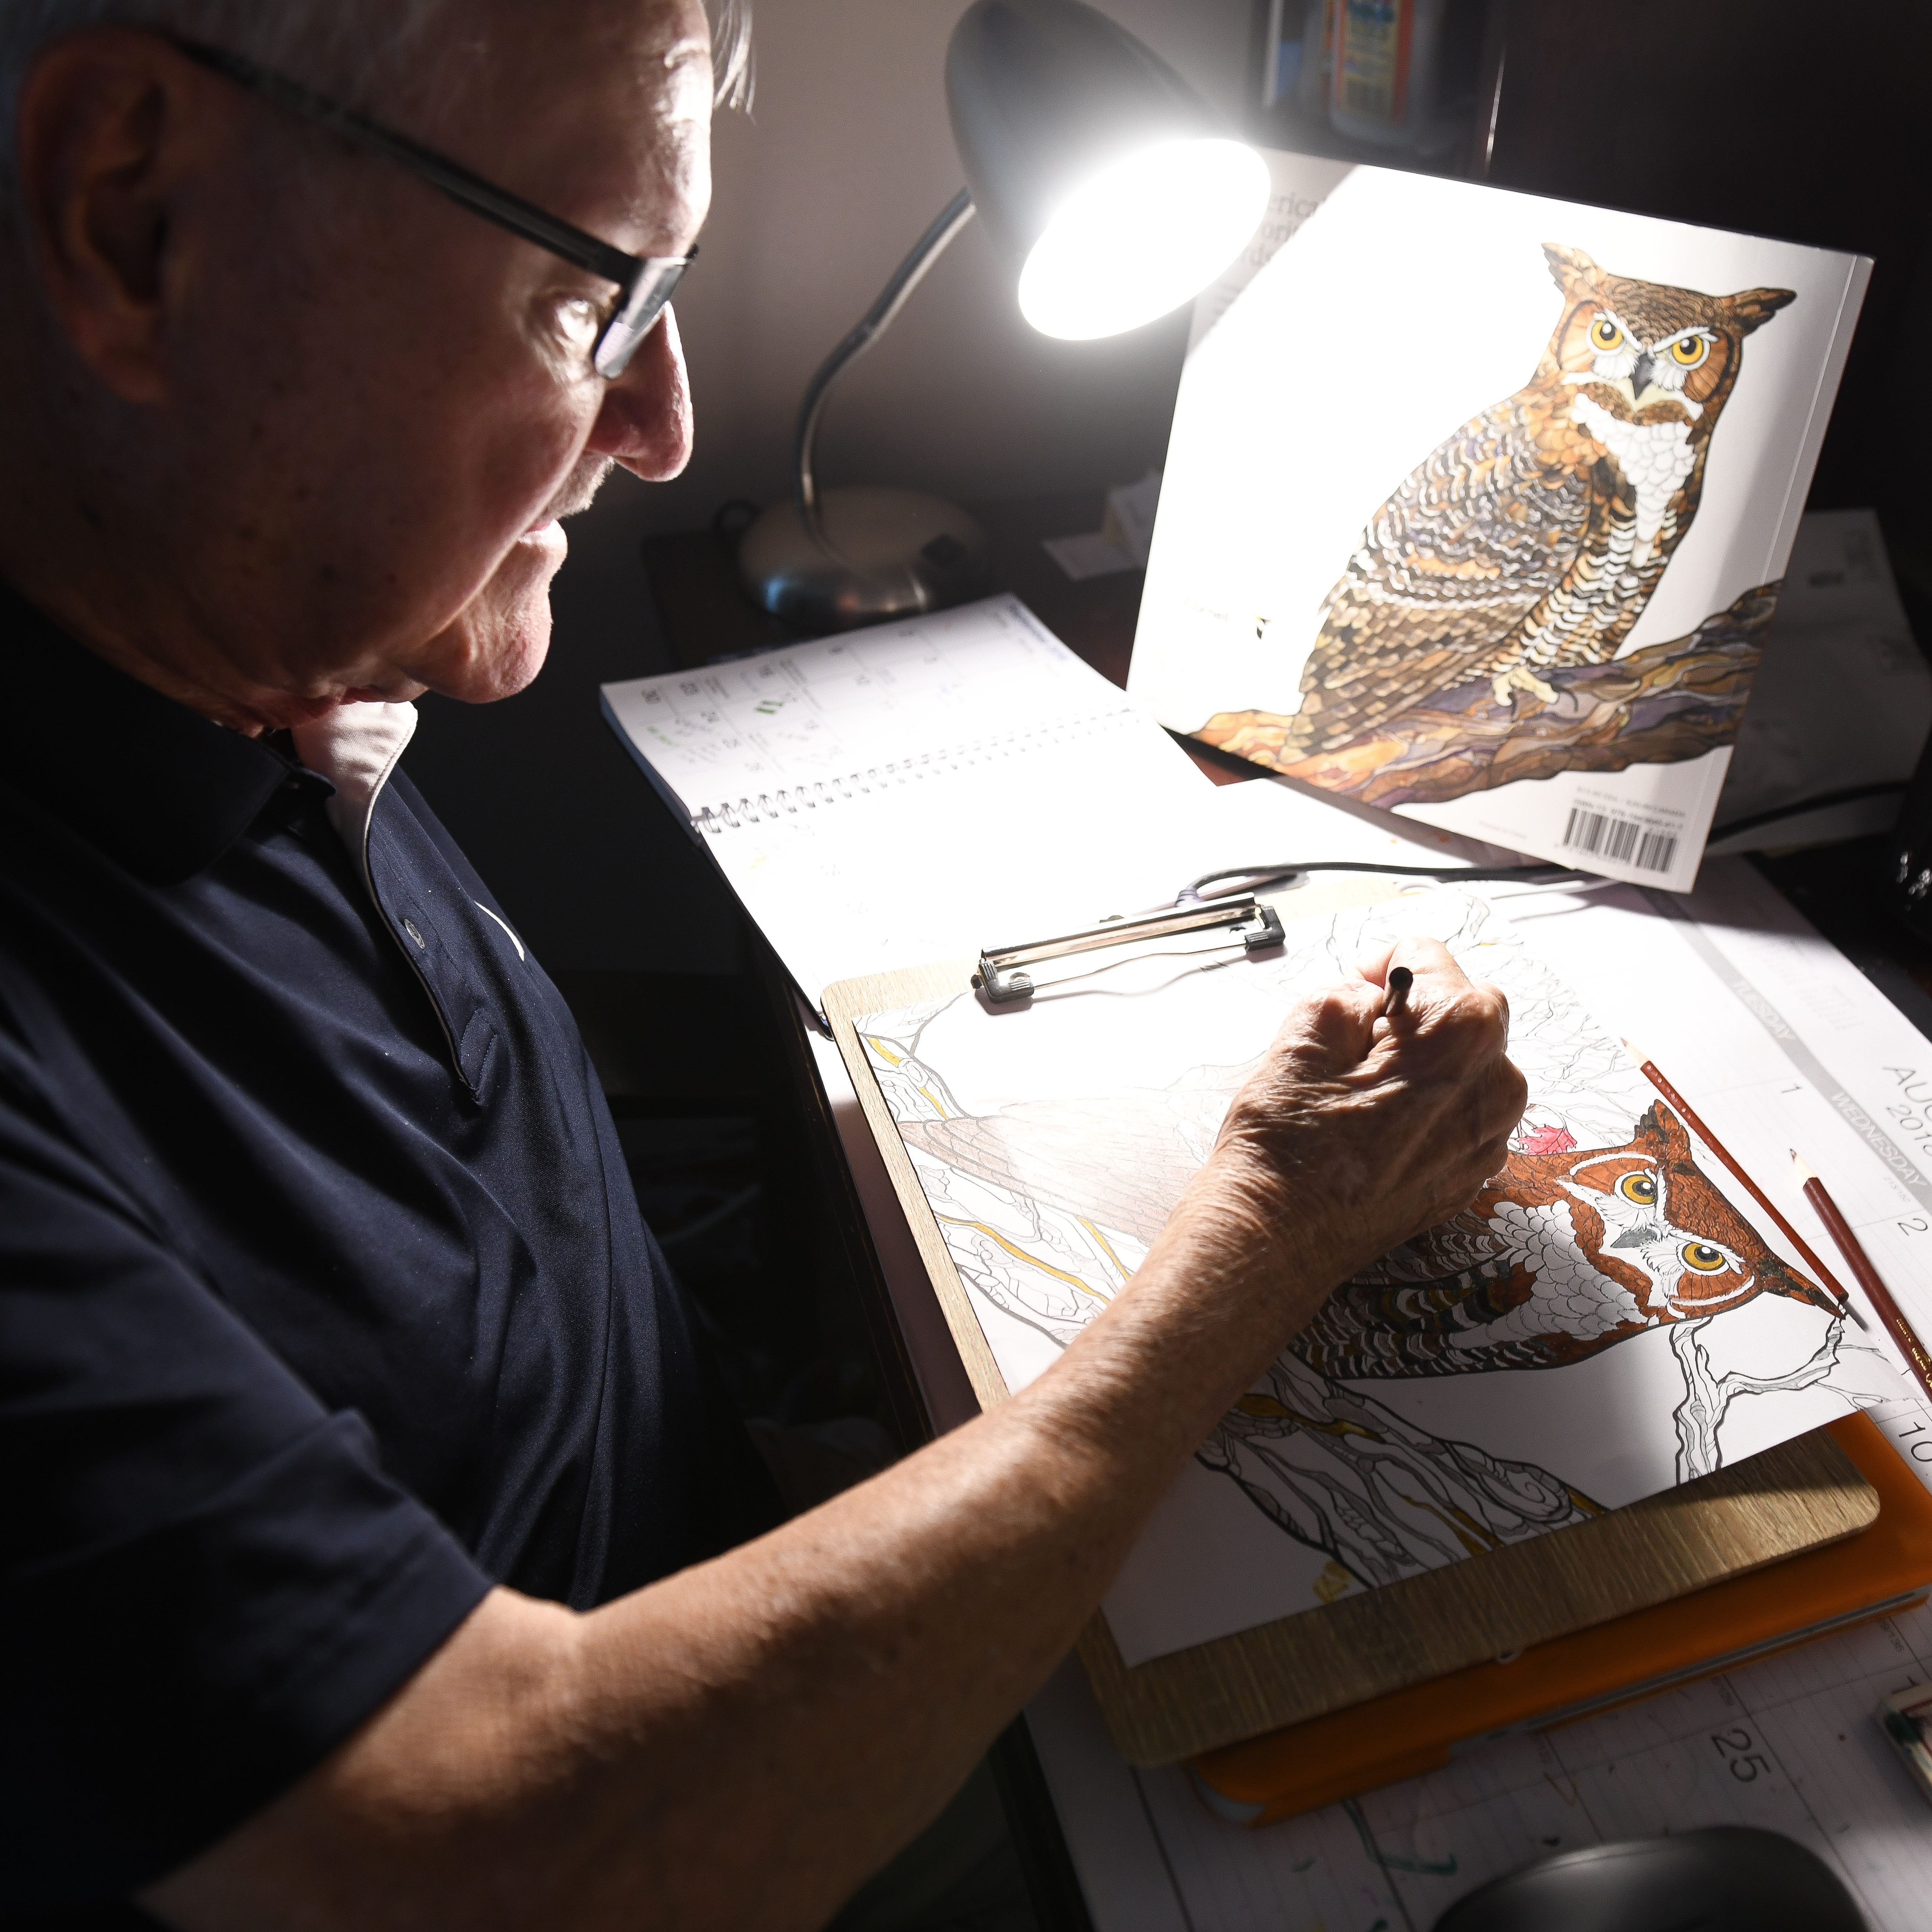 After losing his left arm, Ocean Pines man finds a passion for art